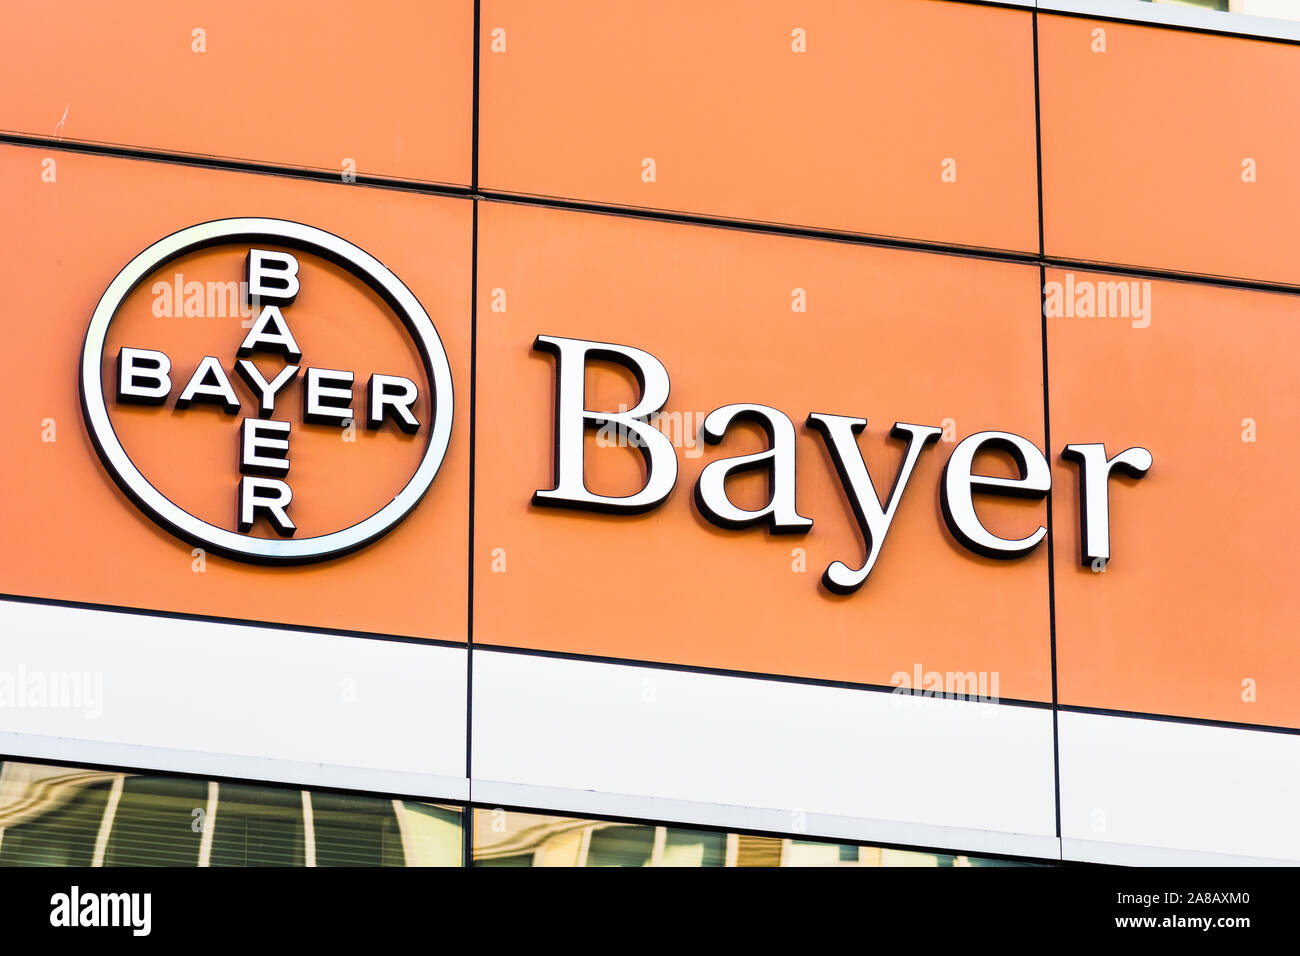 Nov 2, 2019 San Francisco / CA / USA - Bayer offices located in Mission Bay District; Bayer AG is a German multinational pharmaceutical and life scien Stock Photo